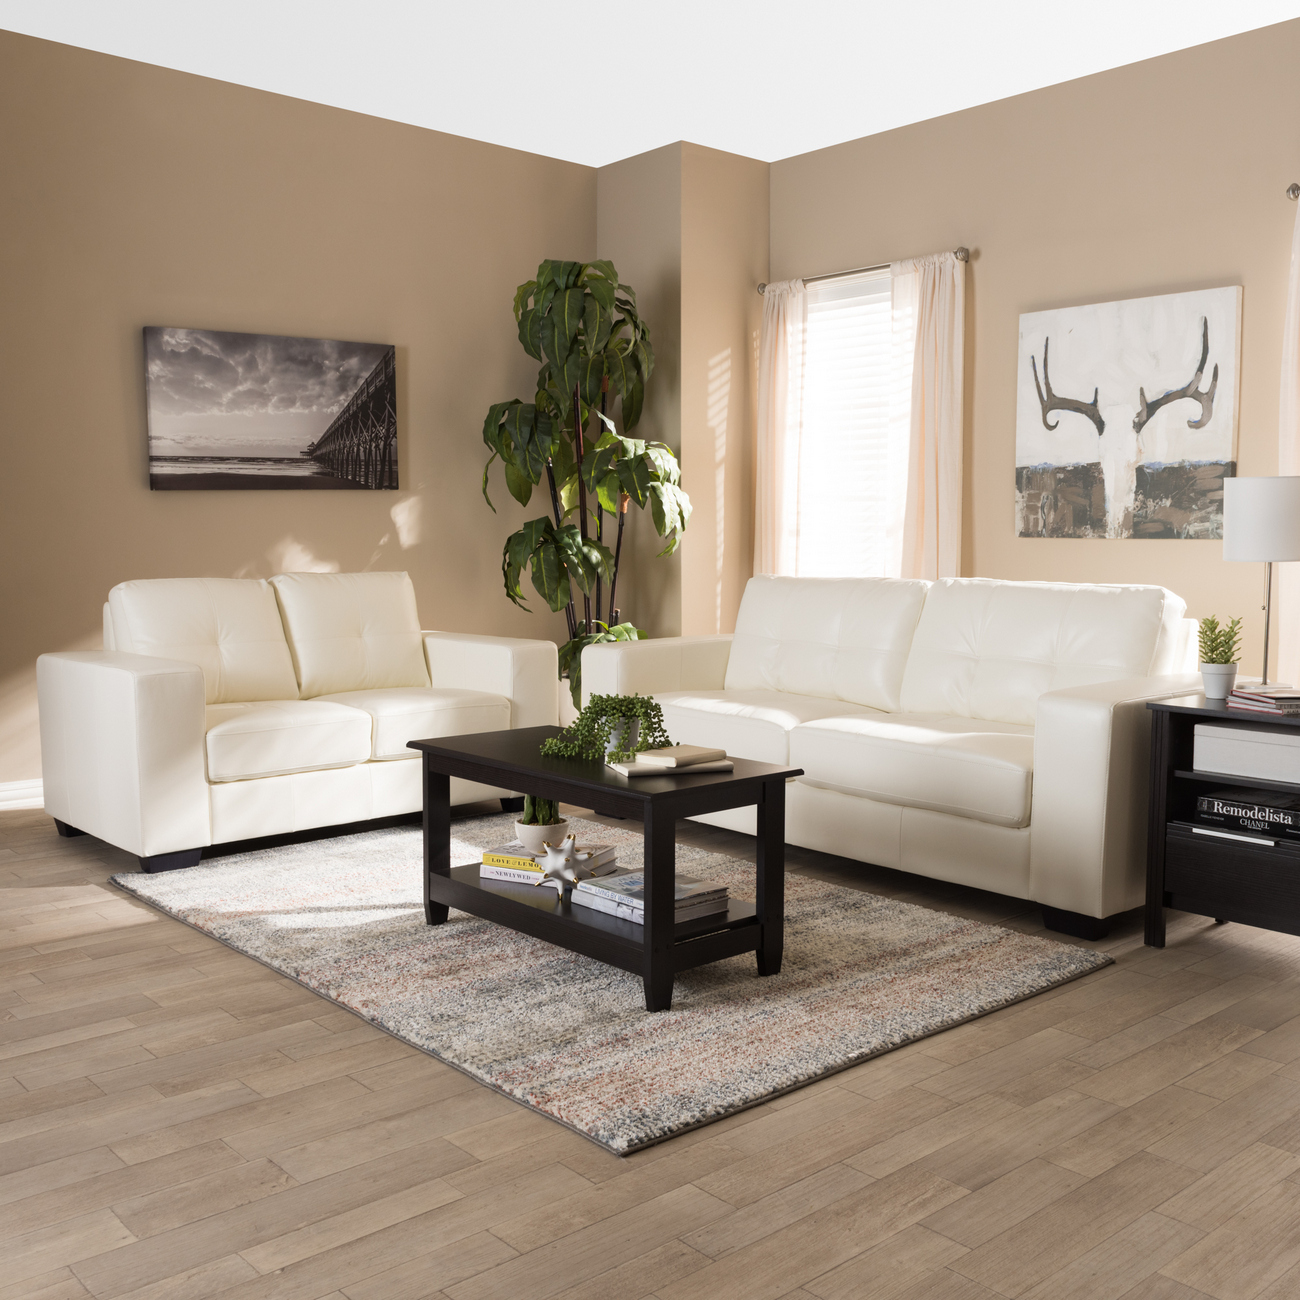 Wholesale Interiors Adalynn Modern Contemporary White Faux Leather Upholstered